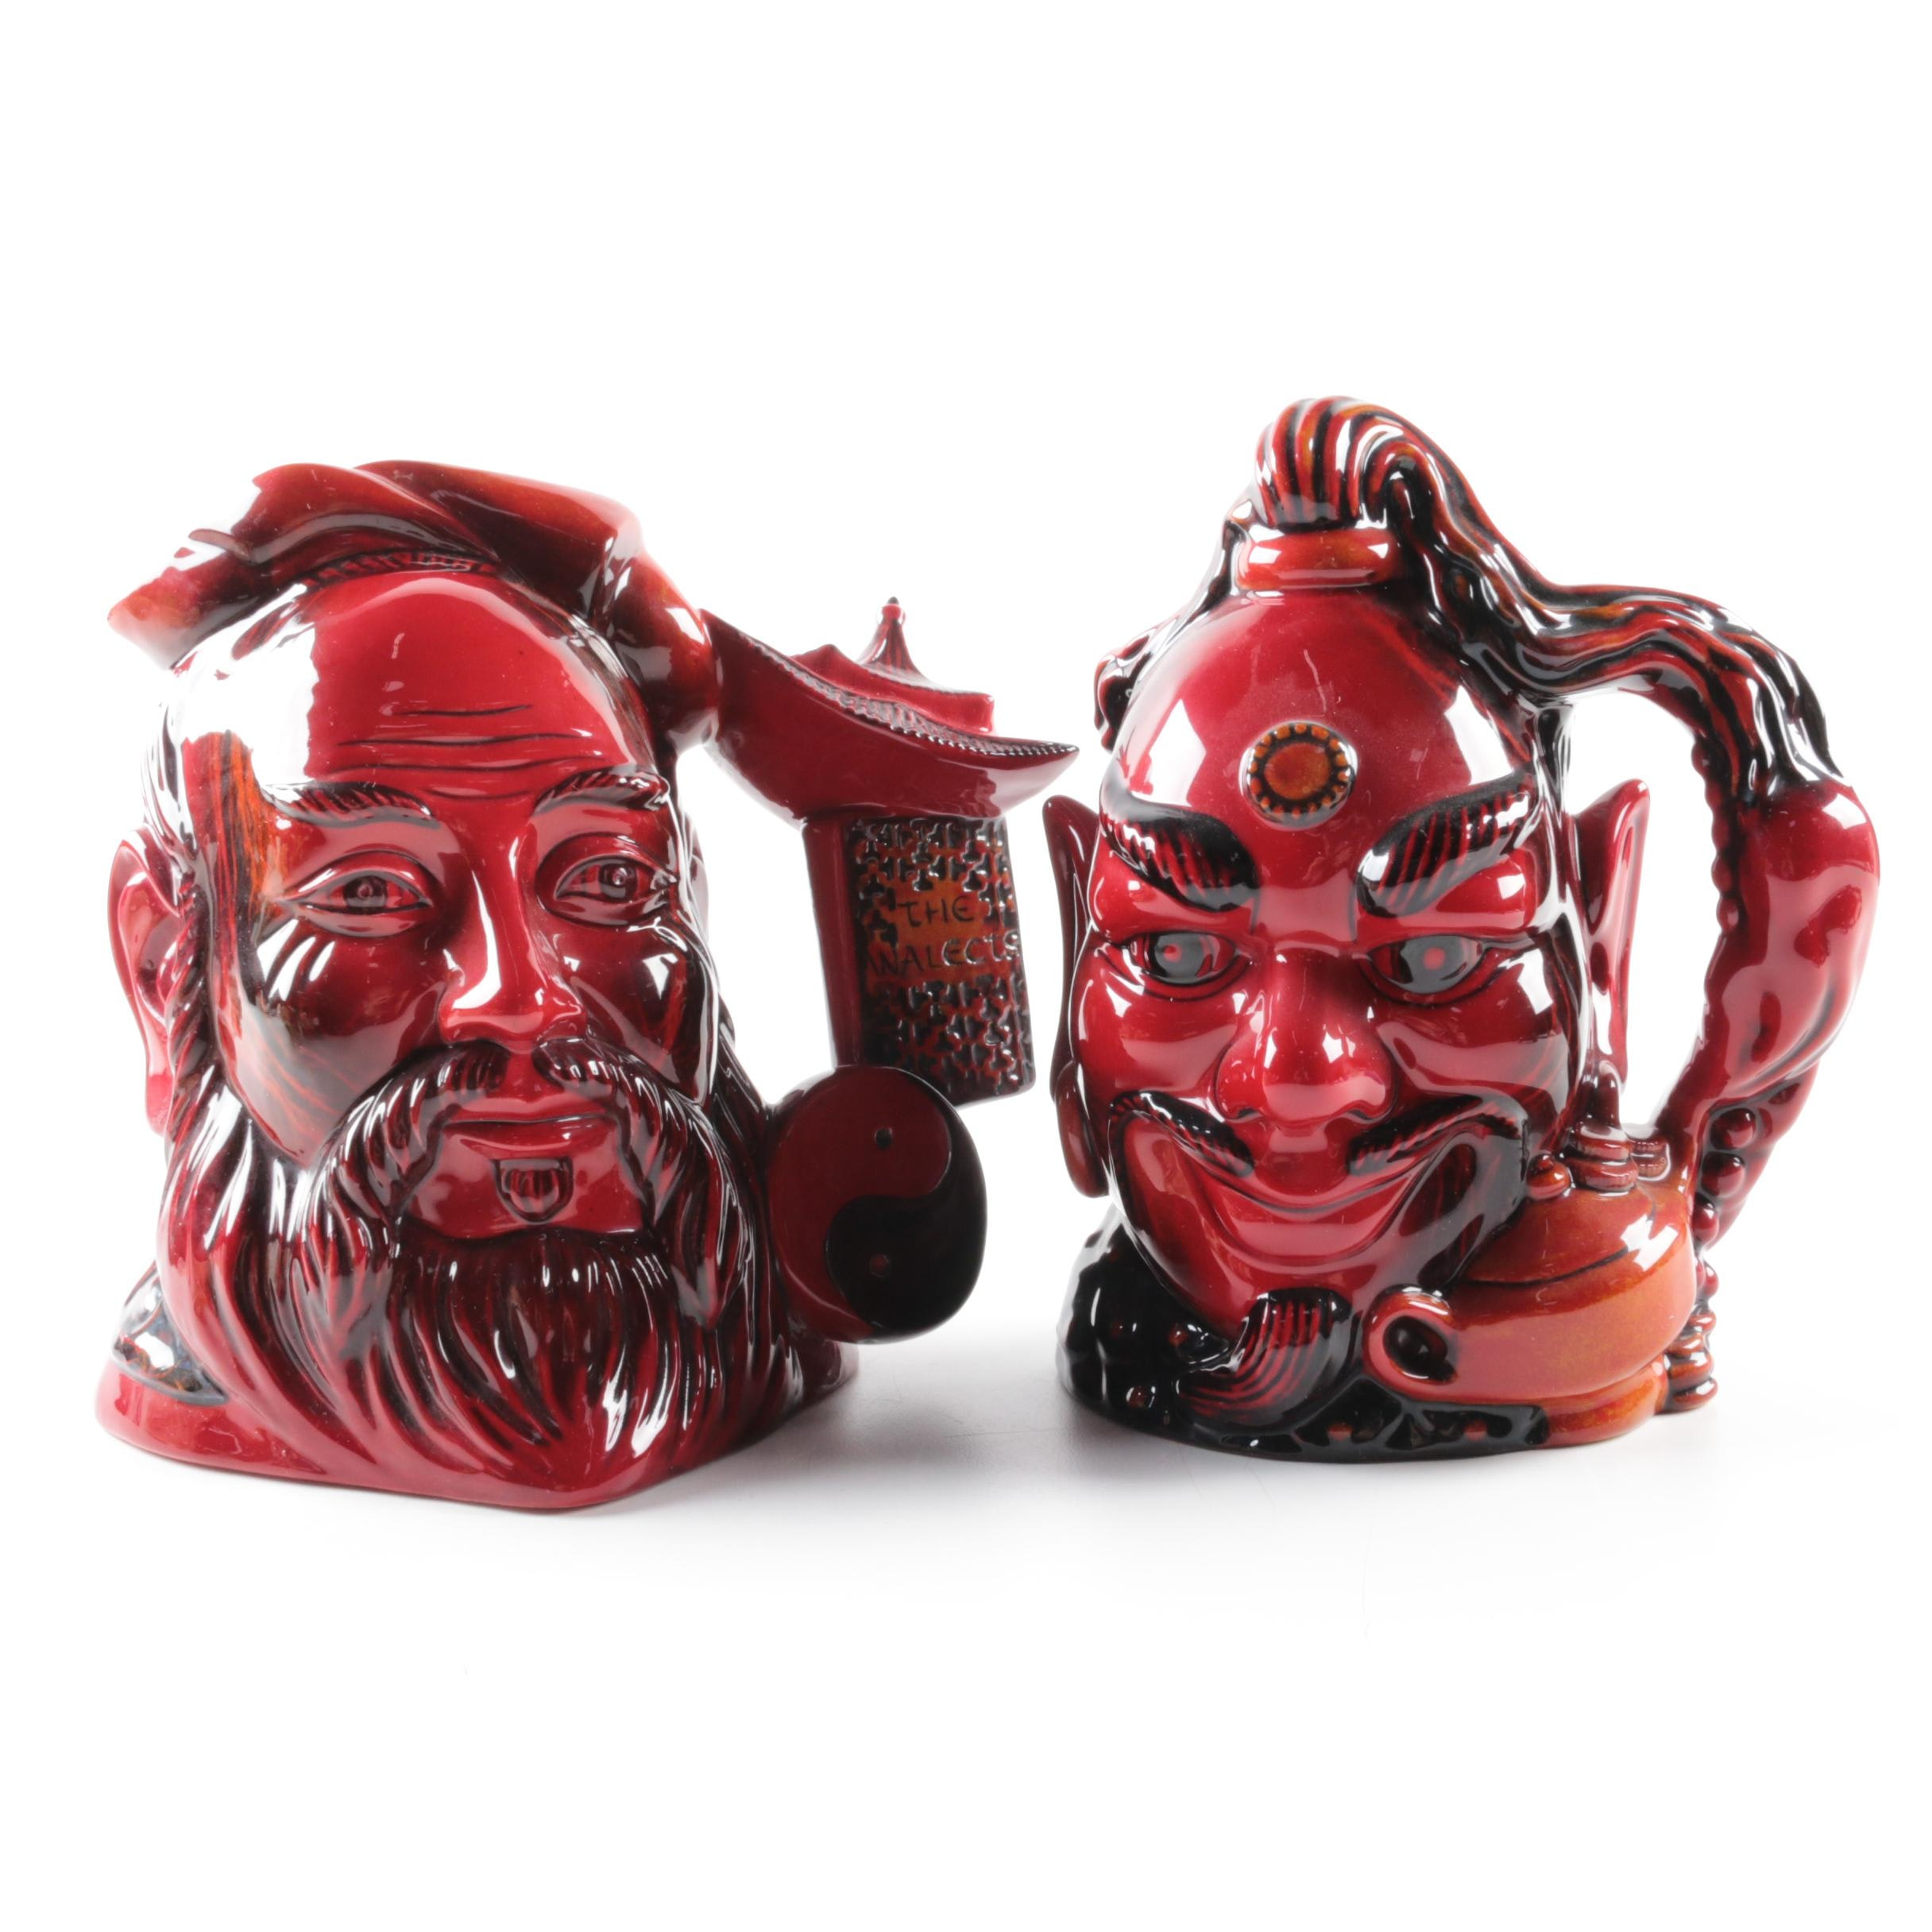 """Royal Doulton Flambe Character Jugs Including """"Confucius"""" and """"Aladdin's Genie"""""""